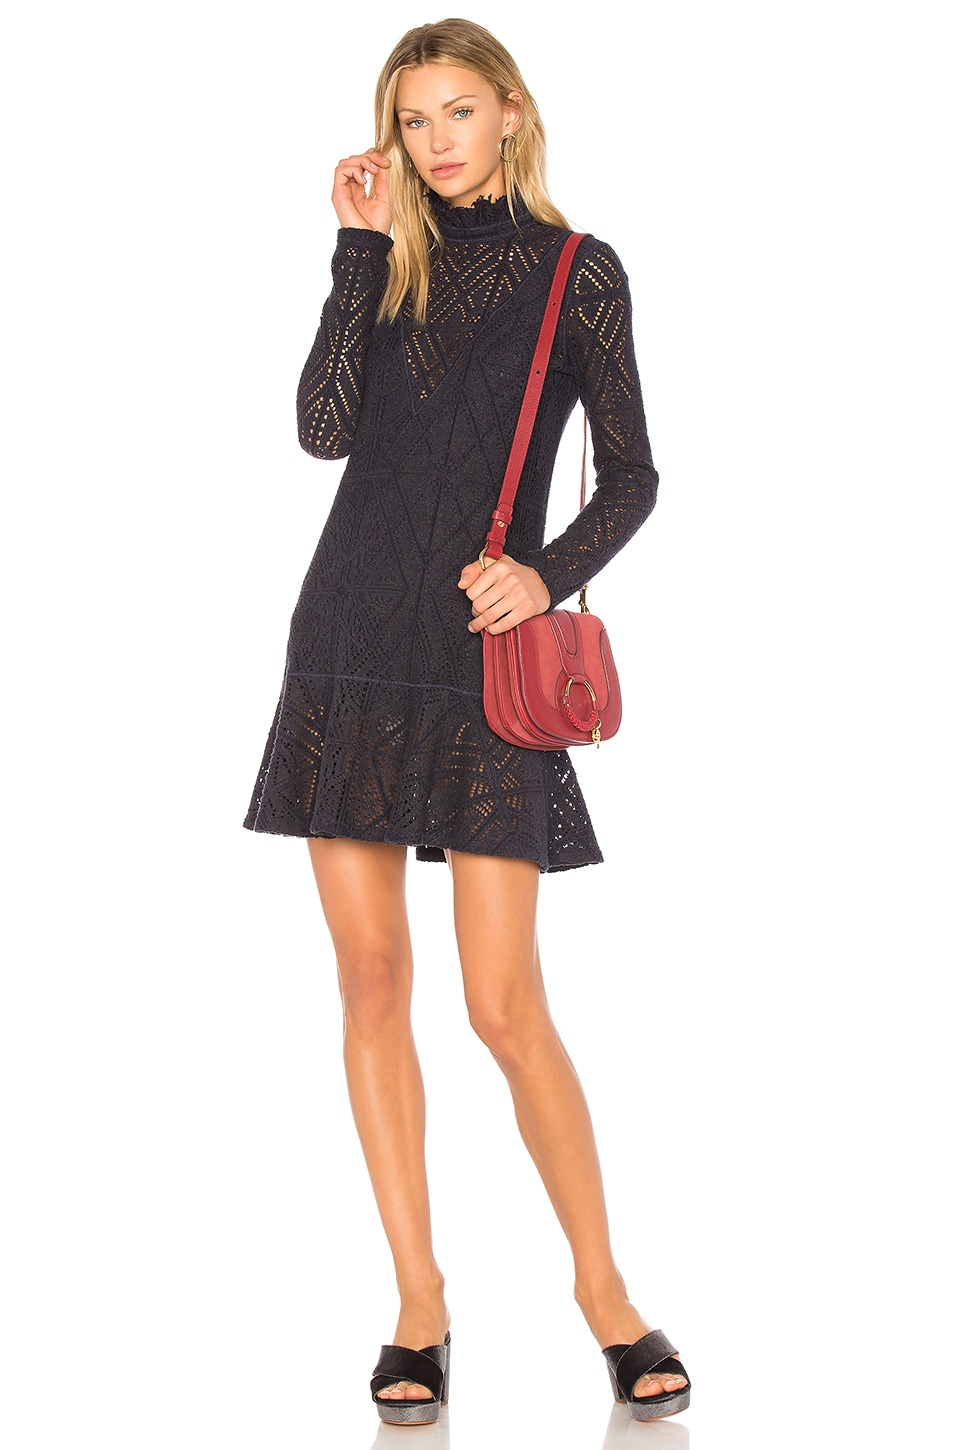 Lace Mini Dress by See By Chloe